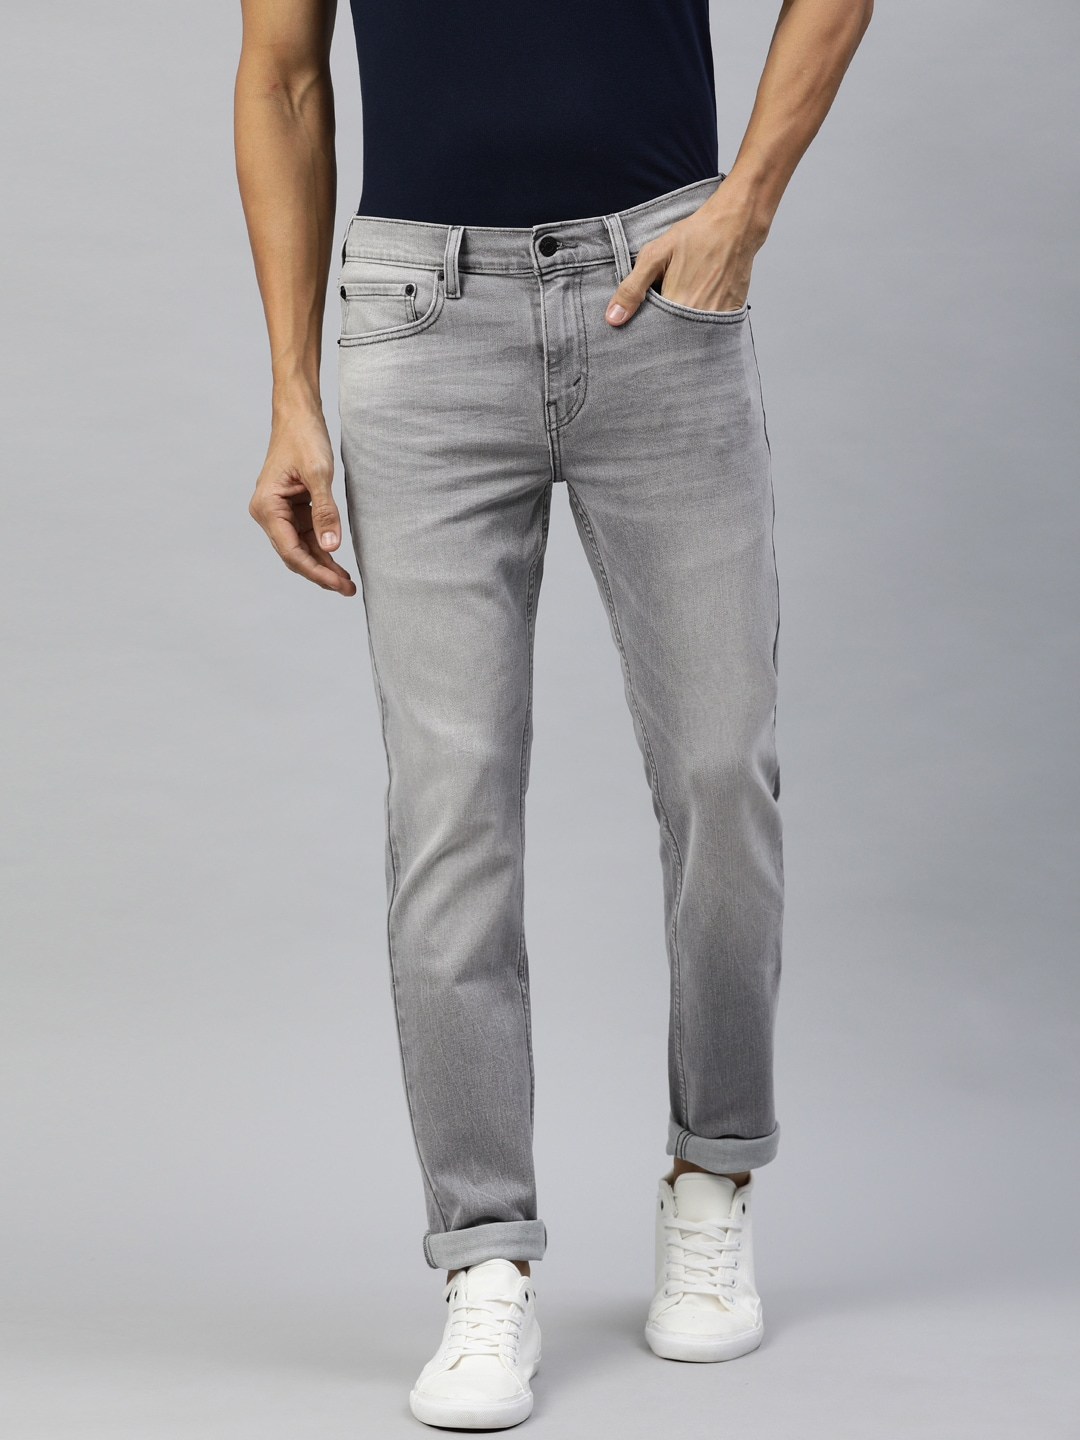 Denizen From Levis Men Grey 288 Skinny Fit Mid-Rise Clean Look Stretchable Jeans